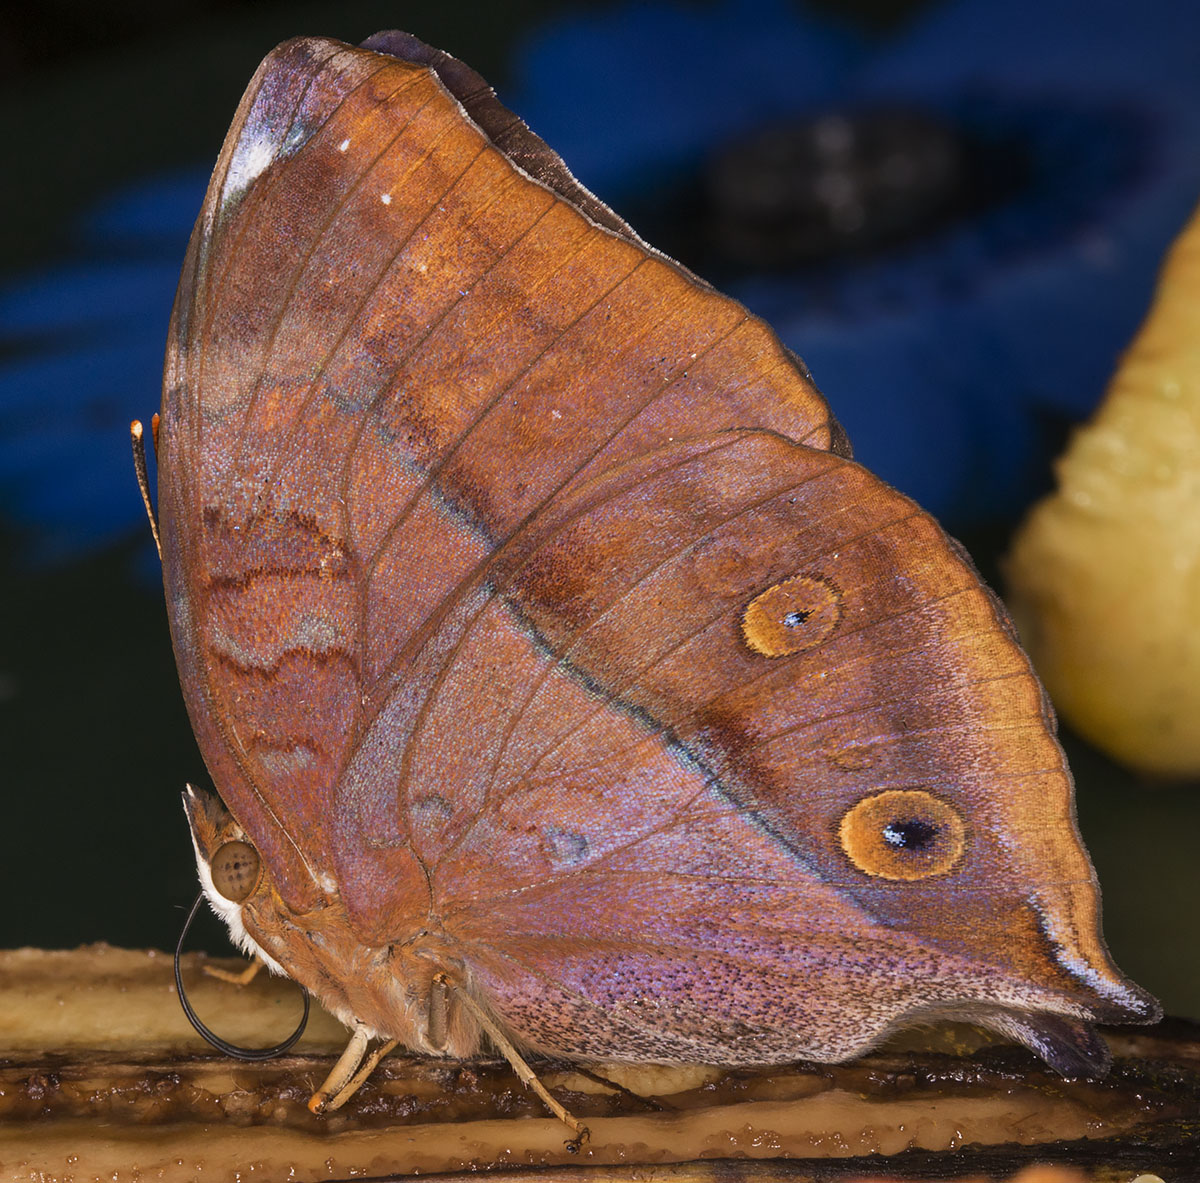 Common Leafwing, Doleschallia bisaltide.  Wisley Gardens, Butterflies in the Glasshouse, 10 February 2015.